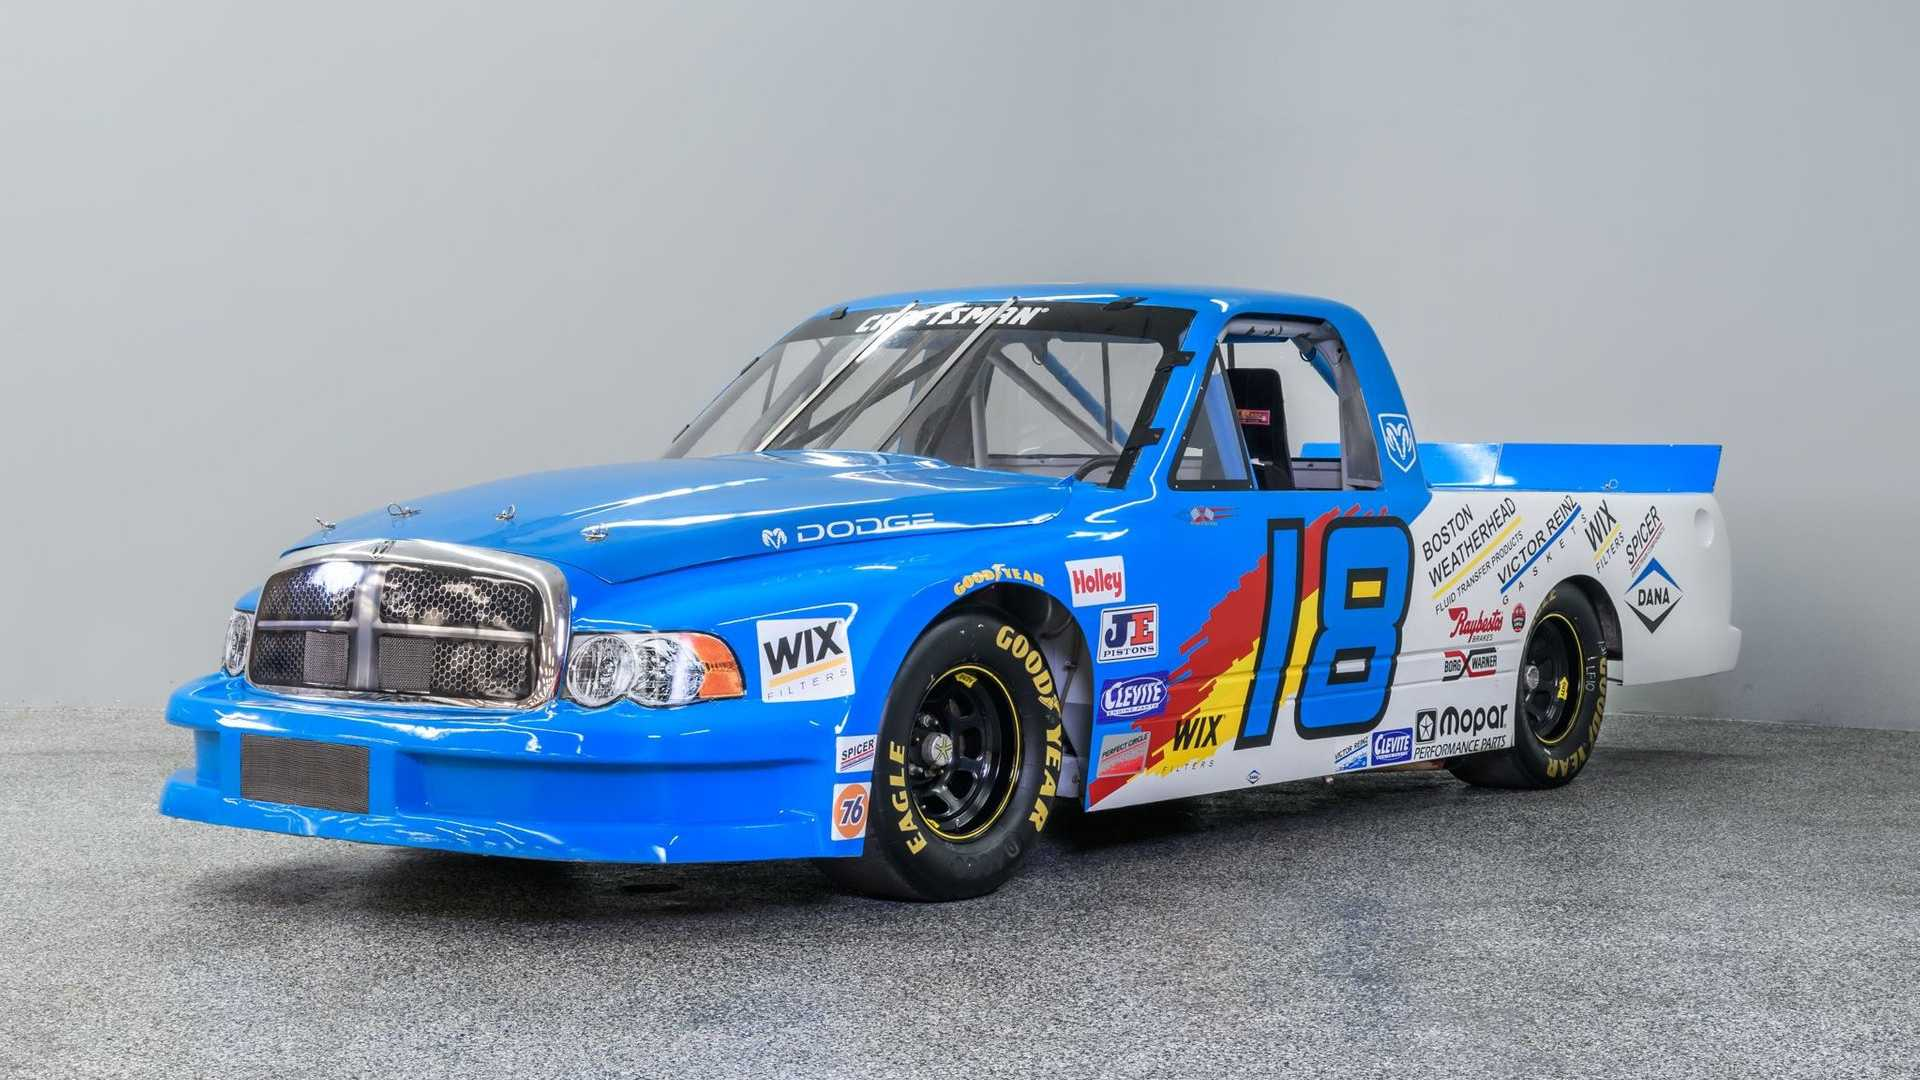 Race Out And Get This 1998 Dodge Ram NASCAR Truck | Motorious